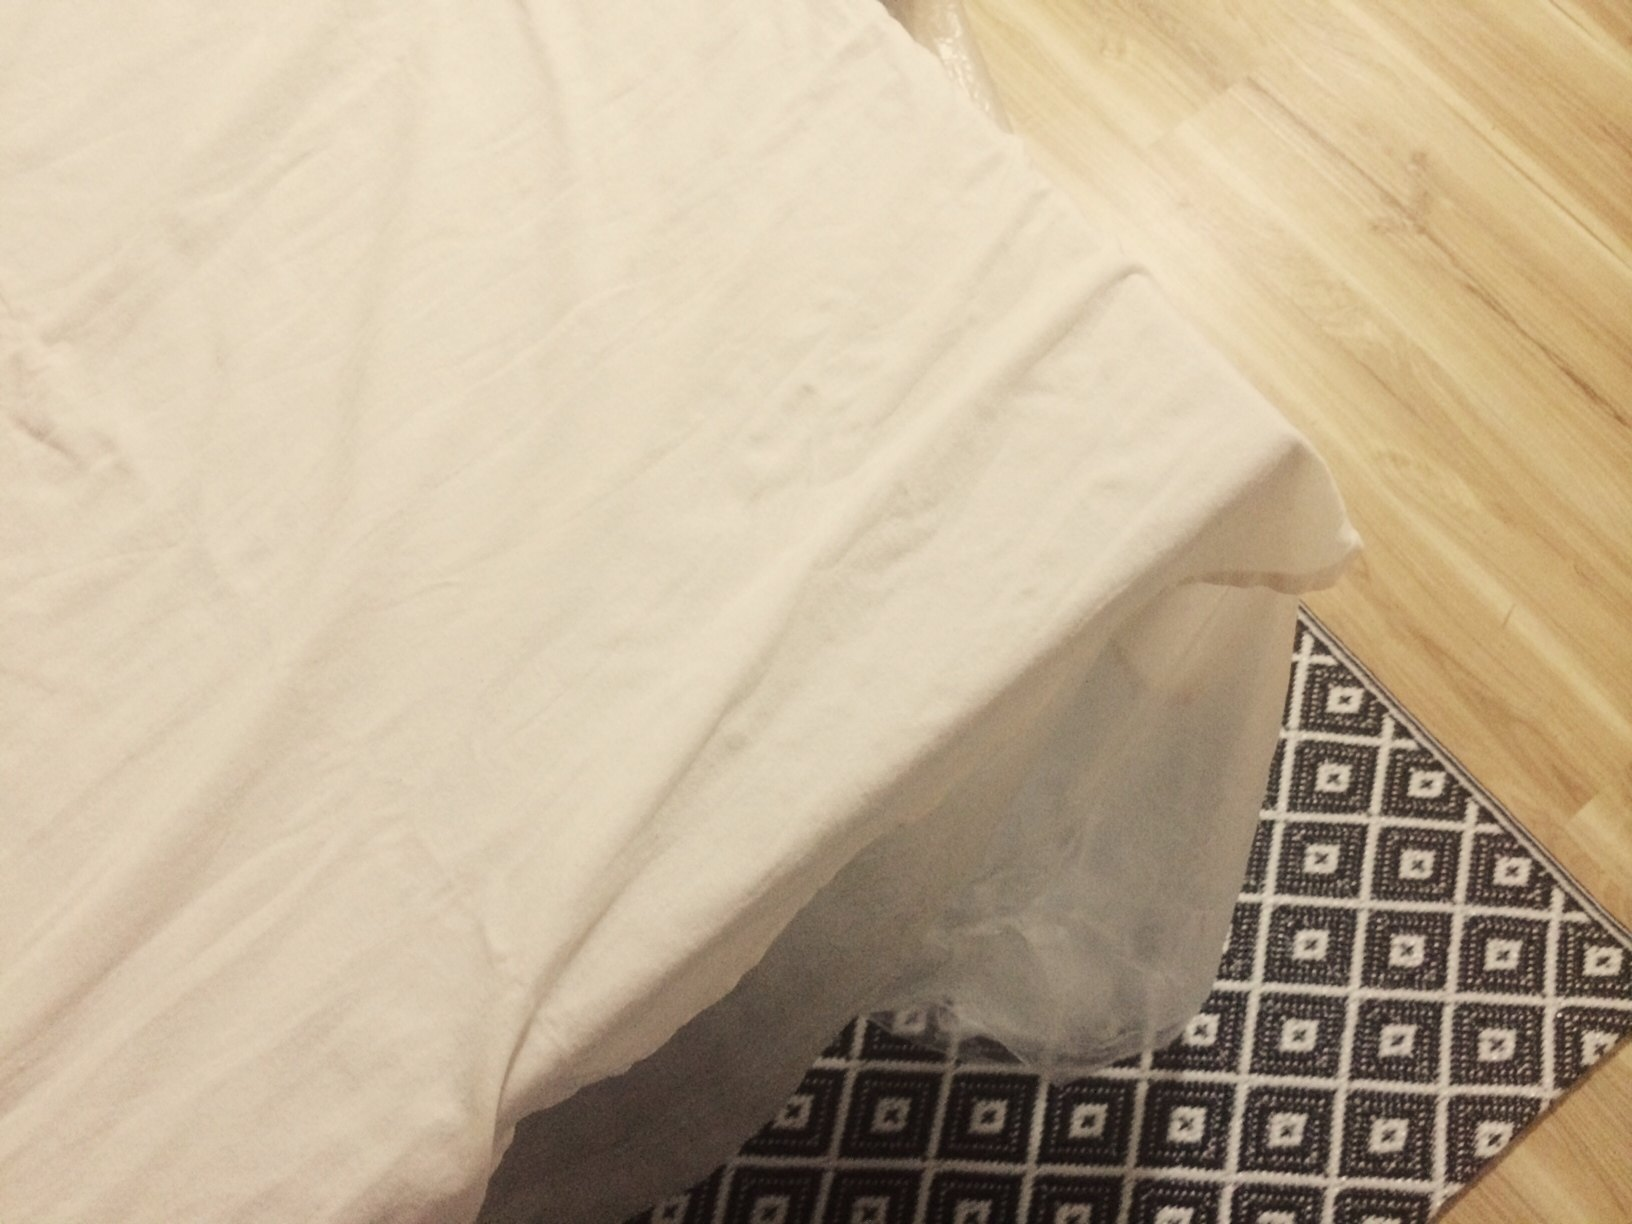 The tablecloth experiment or how to dye fabric naturally